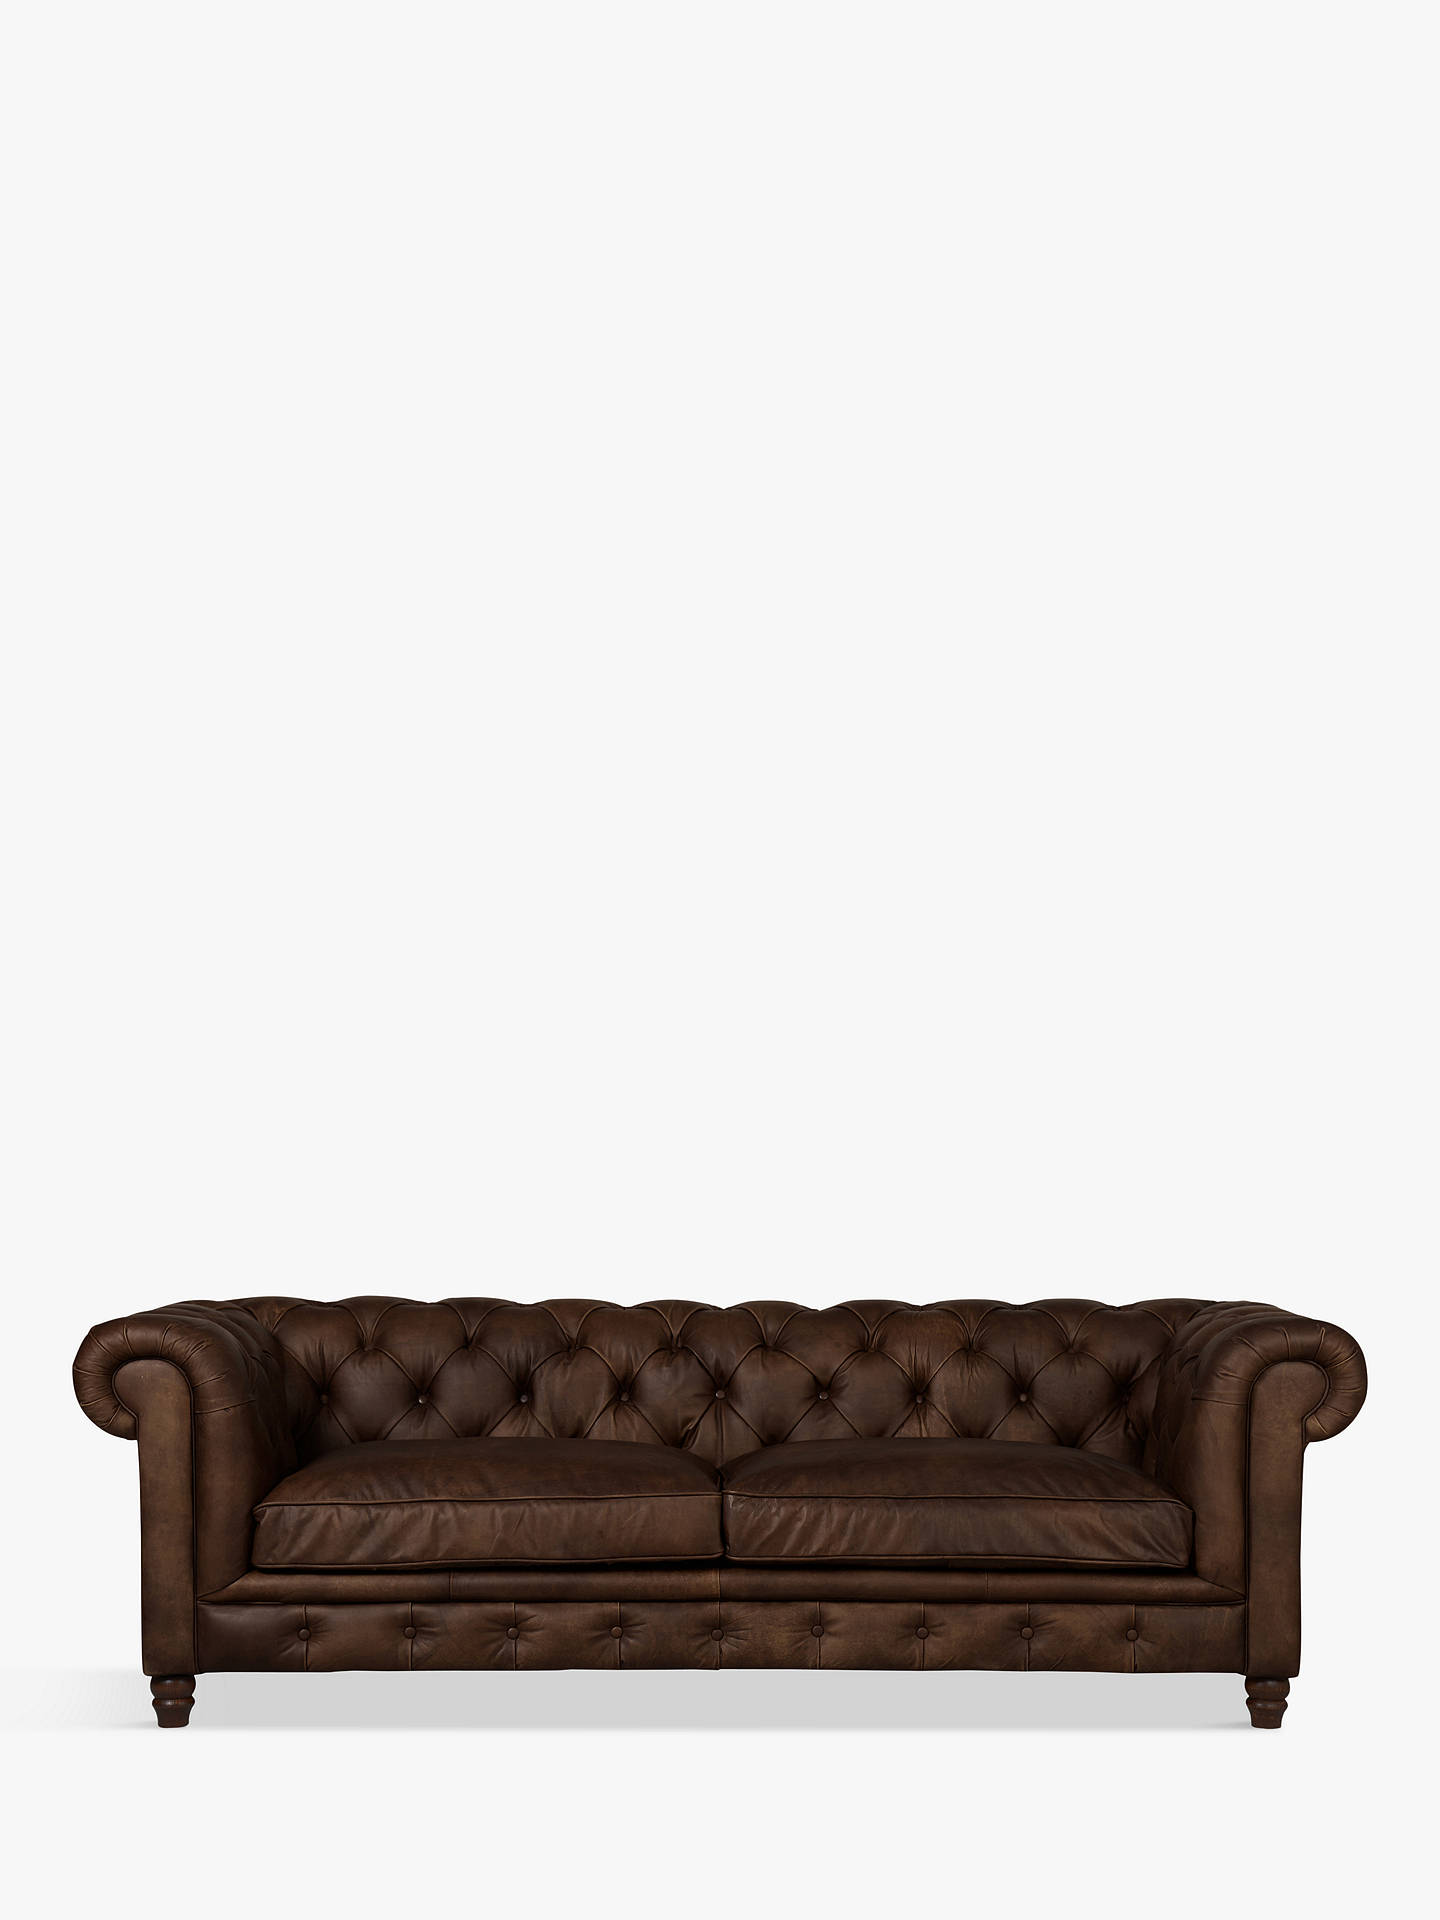 Fabulous Halo Earle Chesterfield Grand 4 Seater Leather Sofa Riders Cocoa Uwap Interior Chair Design Uwaporg